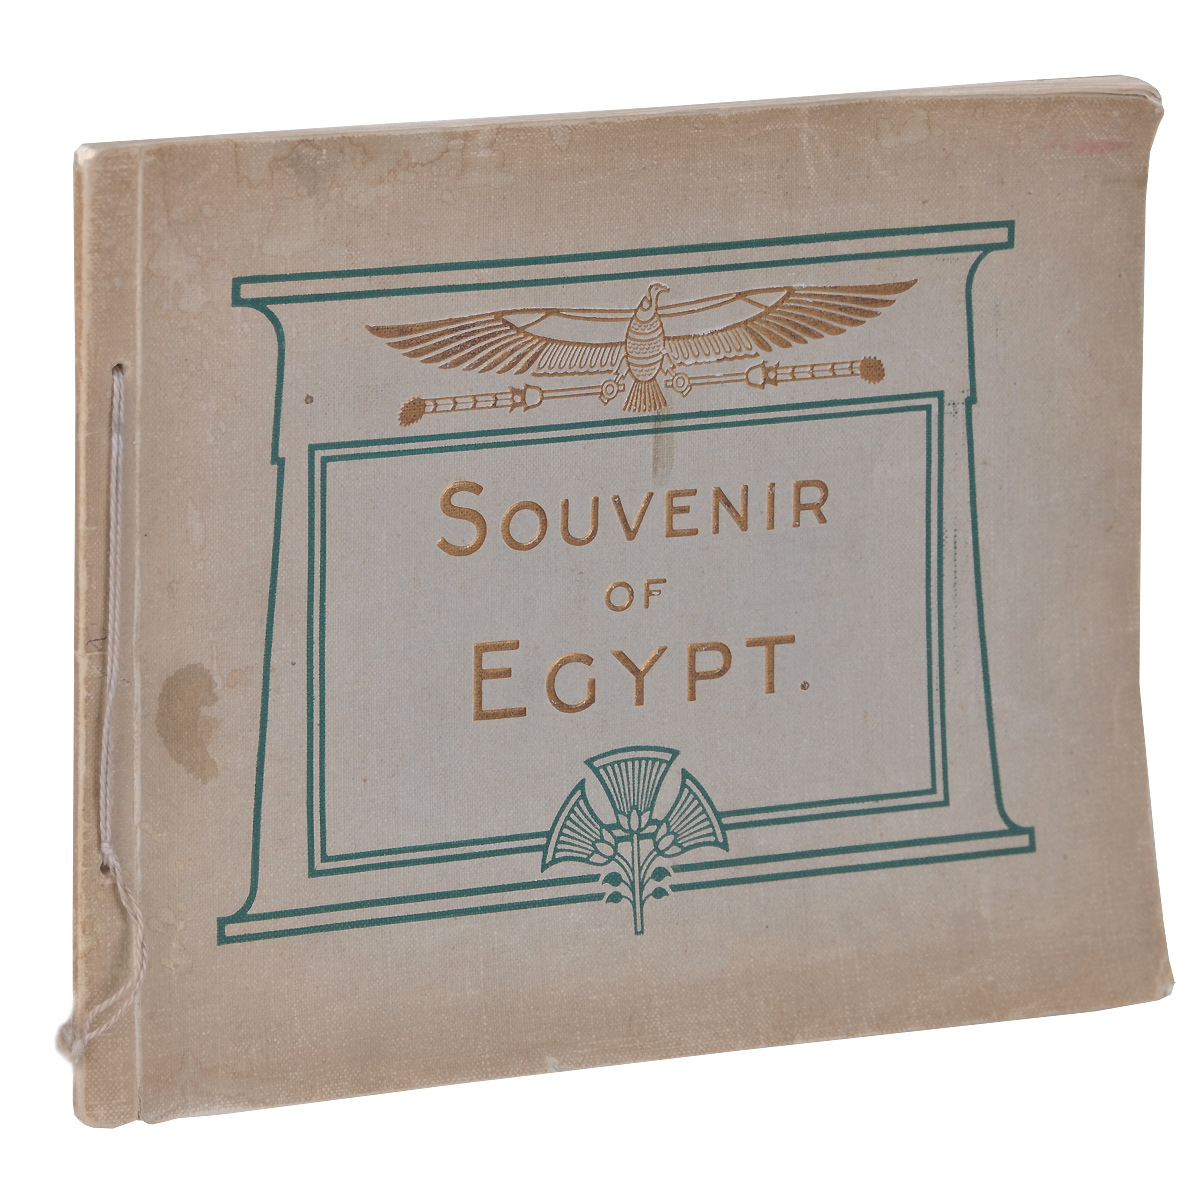 Souvenir of Egypt10012291Лондон, 1920 год. Tillotson Press. Издательский переплет. Сохранена оригинальная обложка. Сохранность хорошая.Album Souvenir of Egypt contains 70 illustrations of Lower and Upper Egypt. Including all the principal views of places of interest on the Nile.Издание не подлежит вывозу за пределы Российской Федерации.